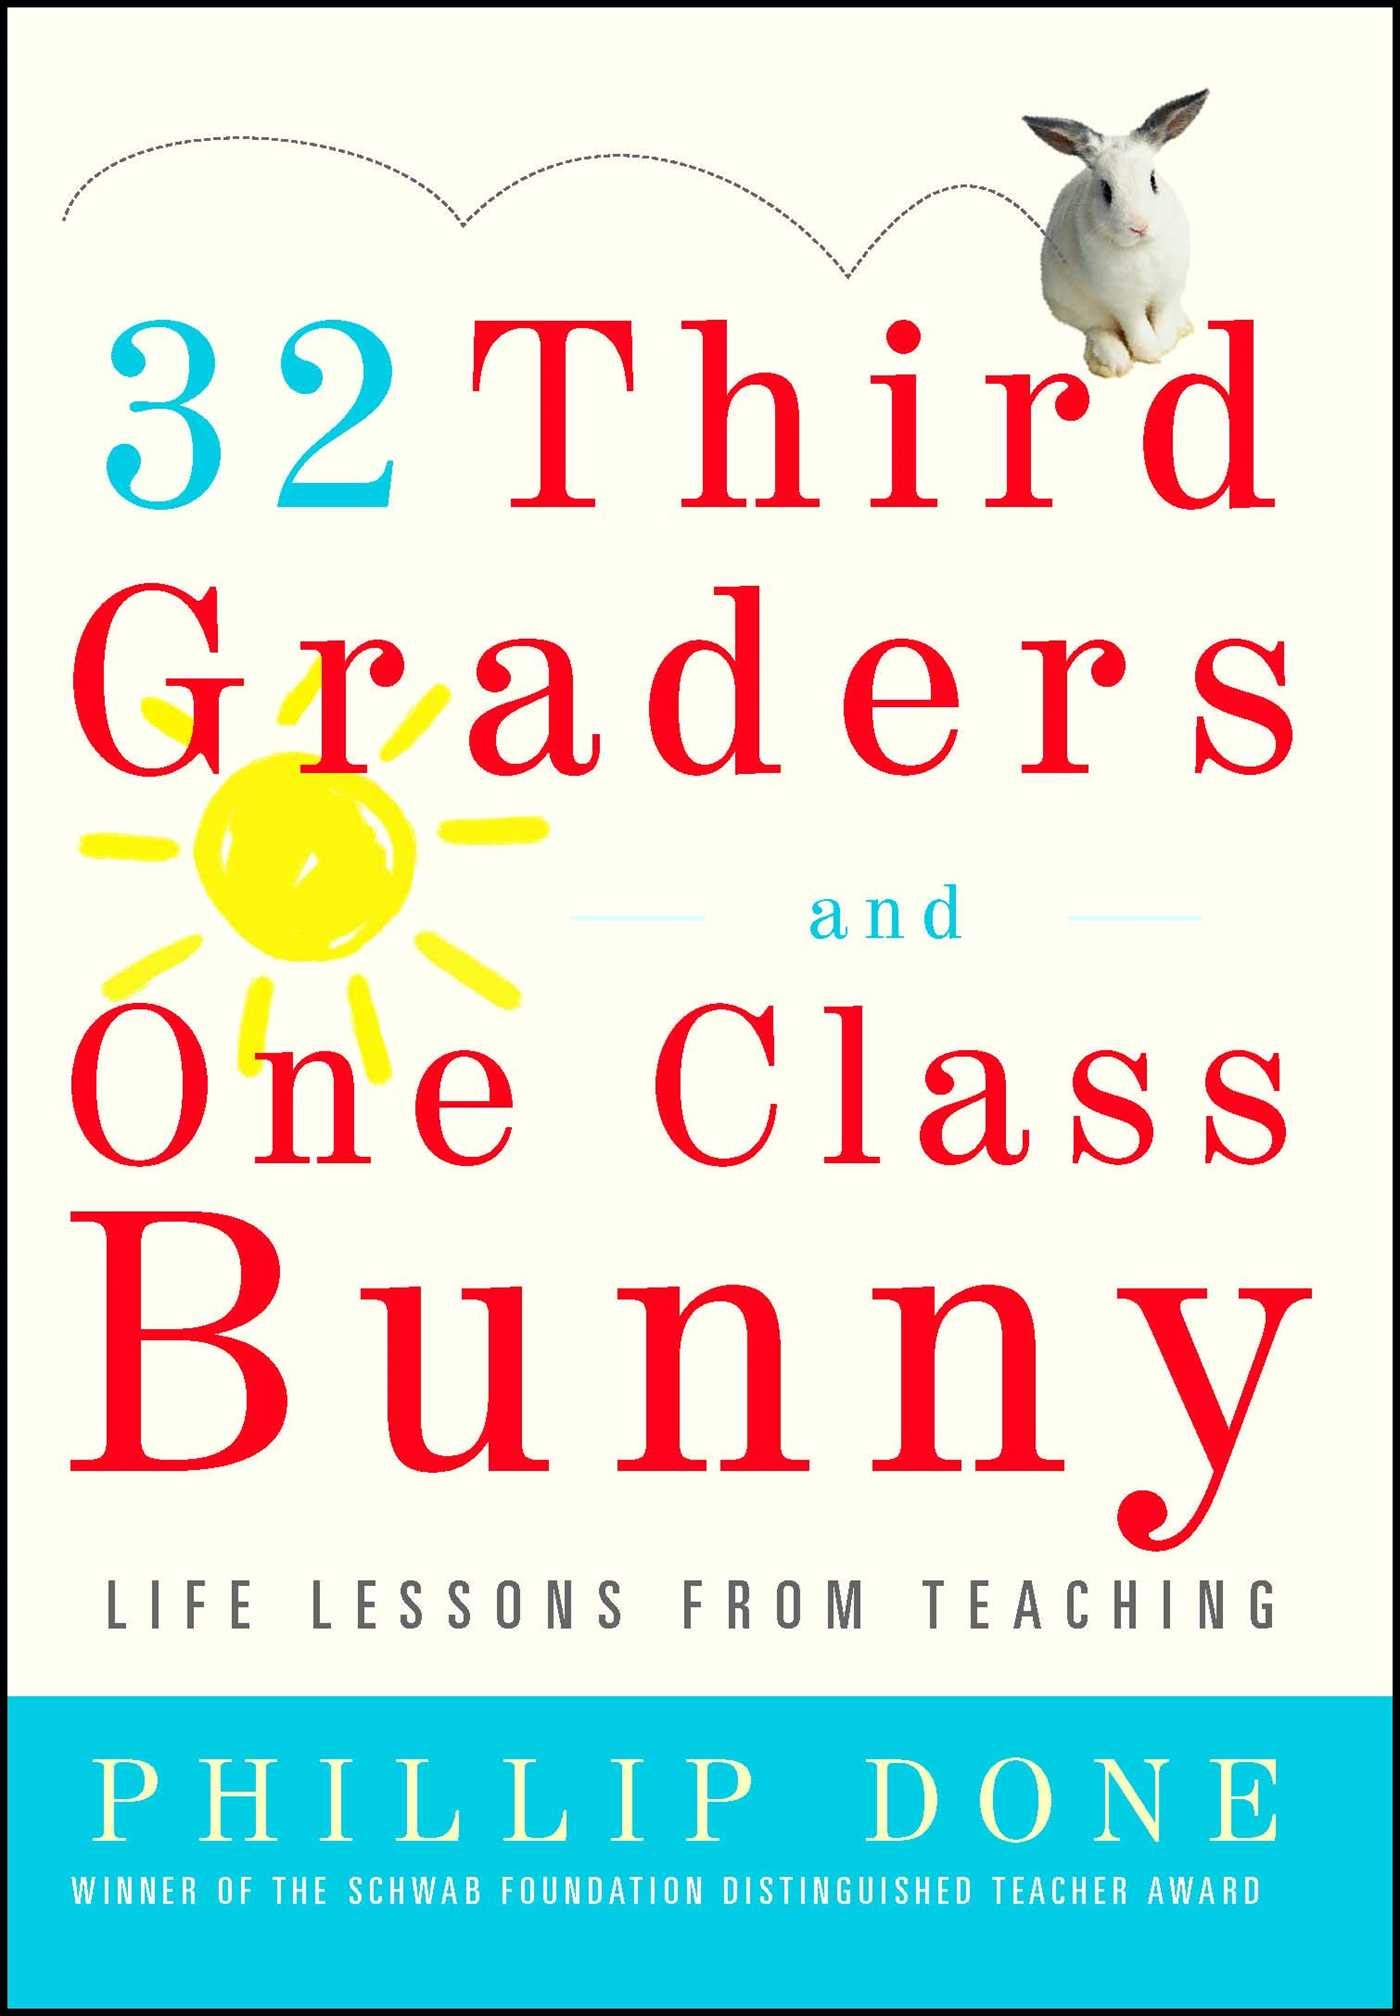 Third Graders And One Class Bunny Life Lessons From Teaching   Third Graders And One Class Bunny Life Lessons From Teaching Phillip  Done  Amazoncom Books Health And Wellness Essay also Definition Essay Paper  Business Plan Writers Florida